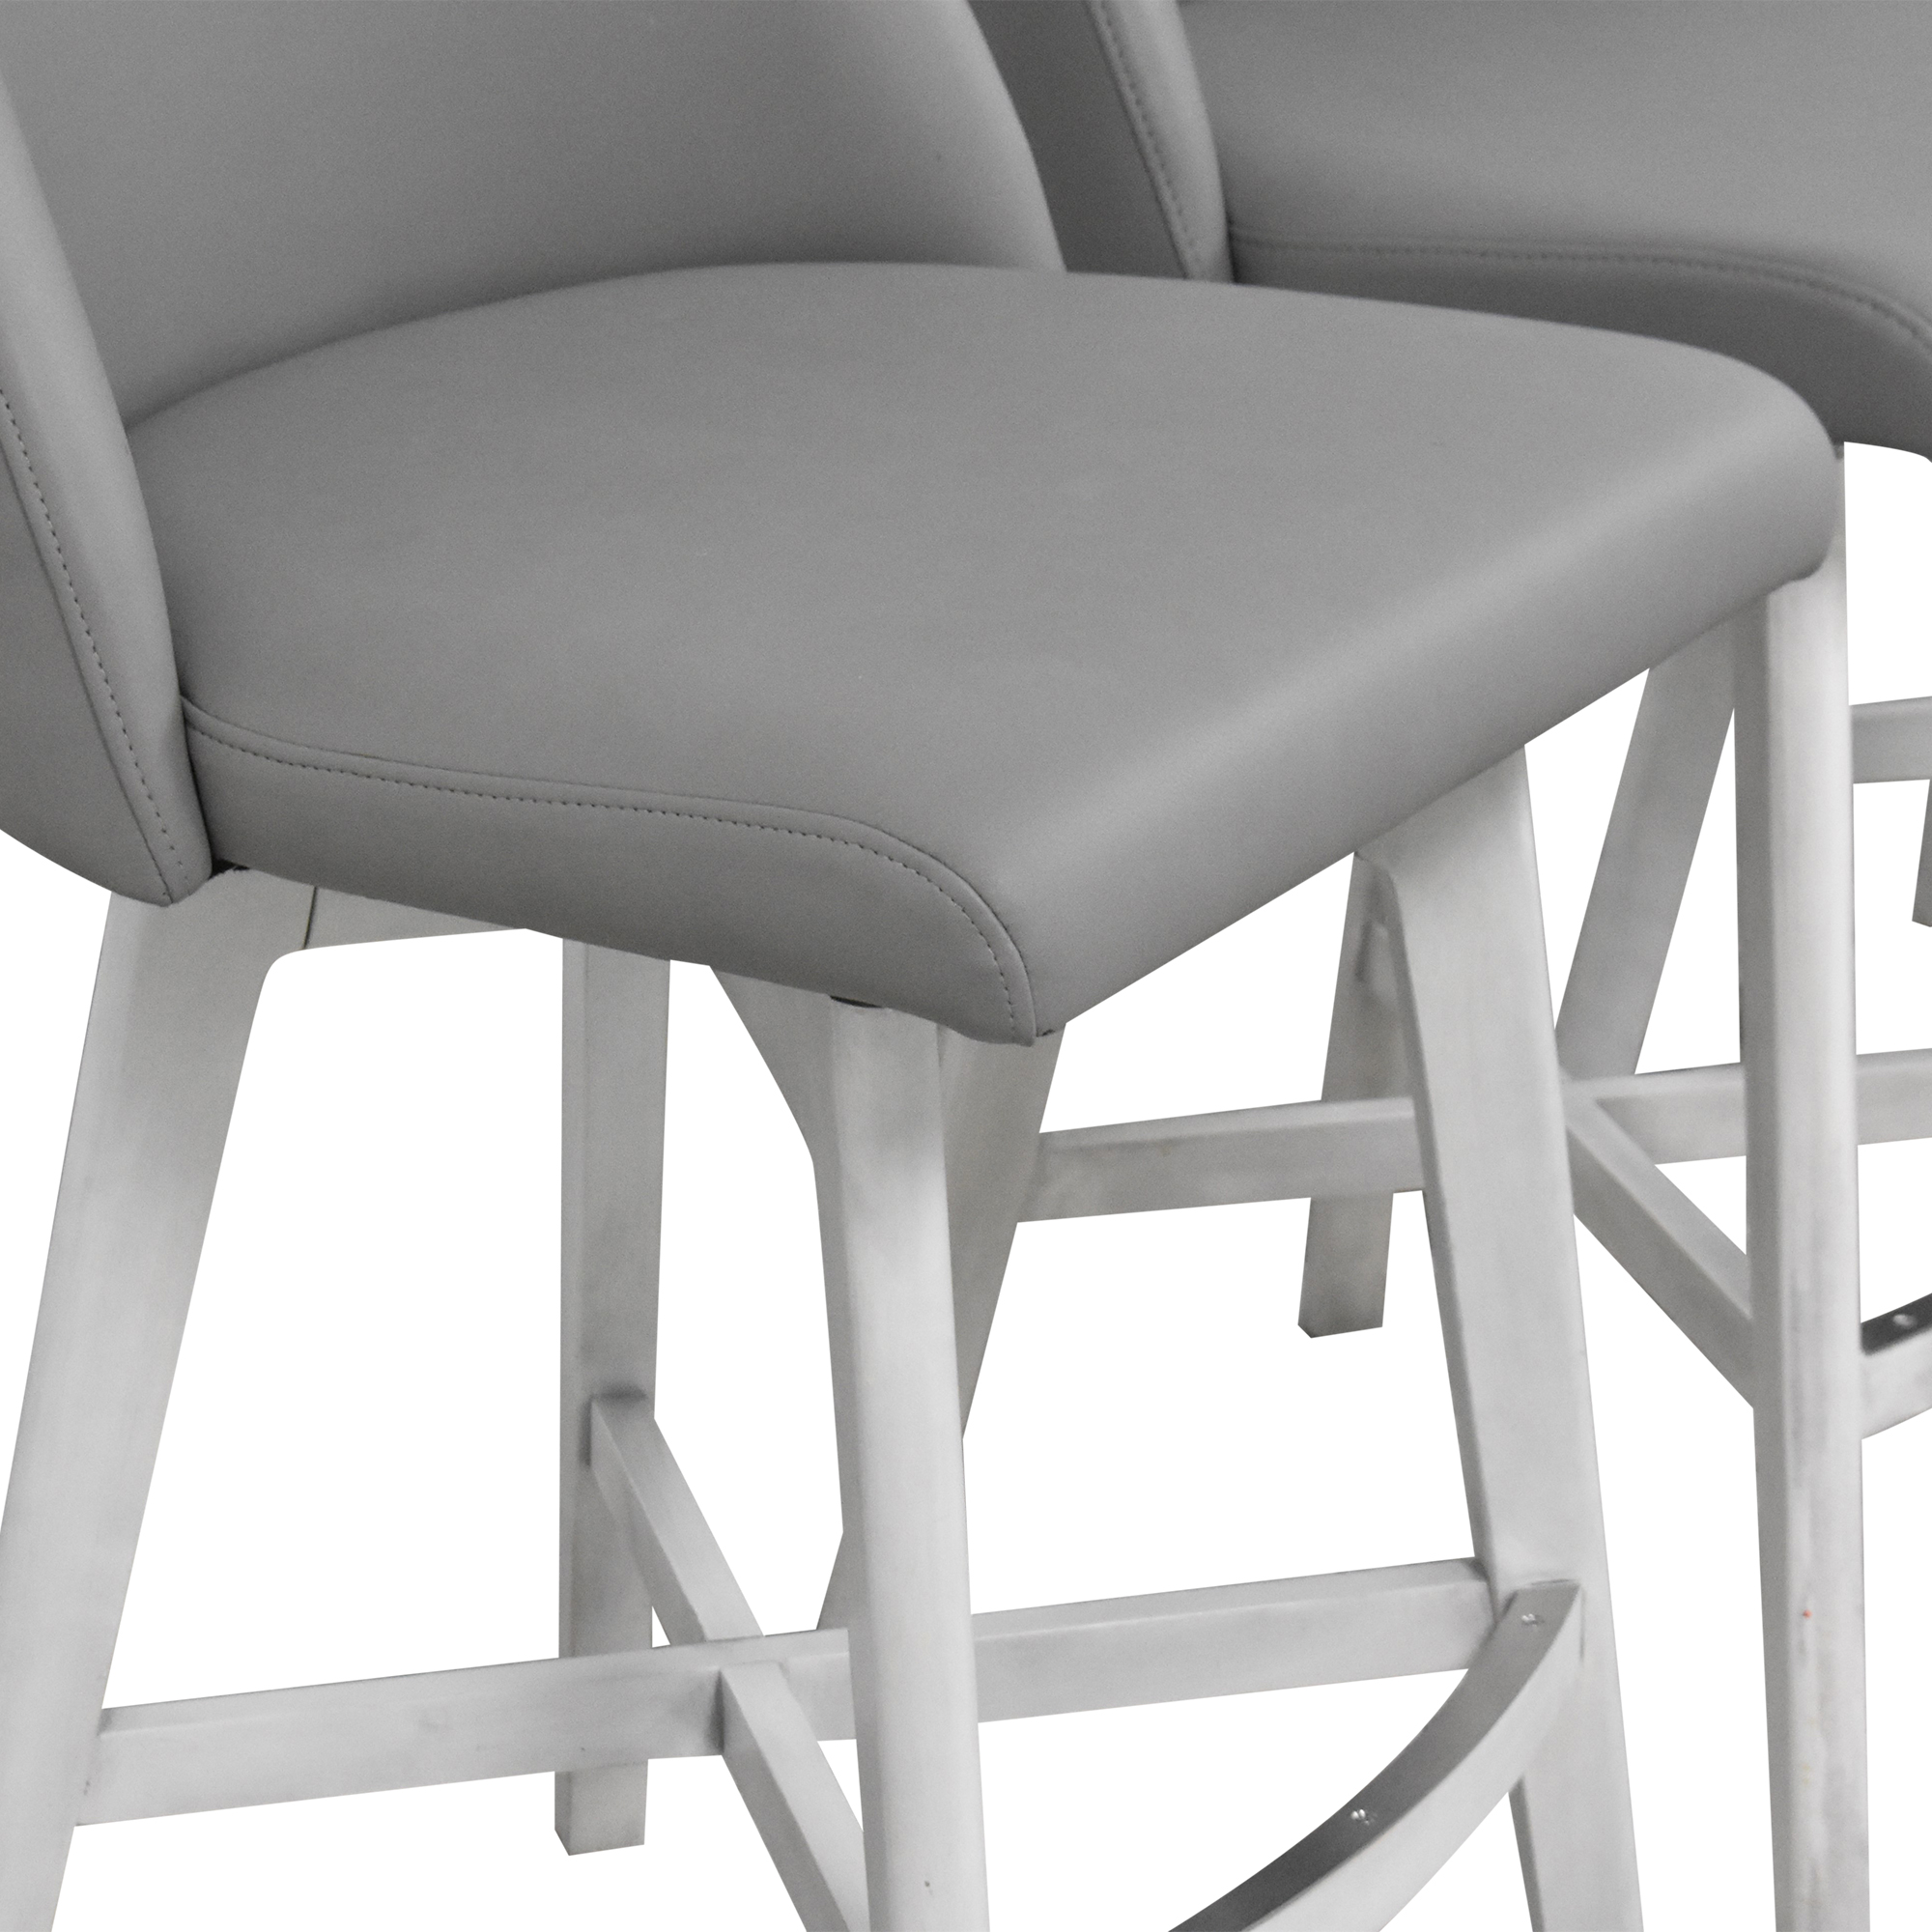 Canadel Downtown Counter Stools / Chairs